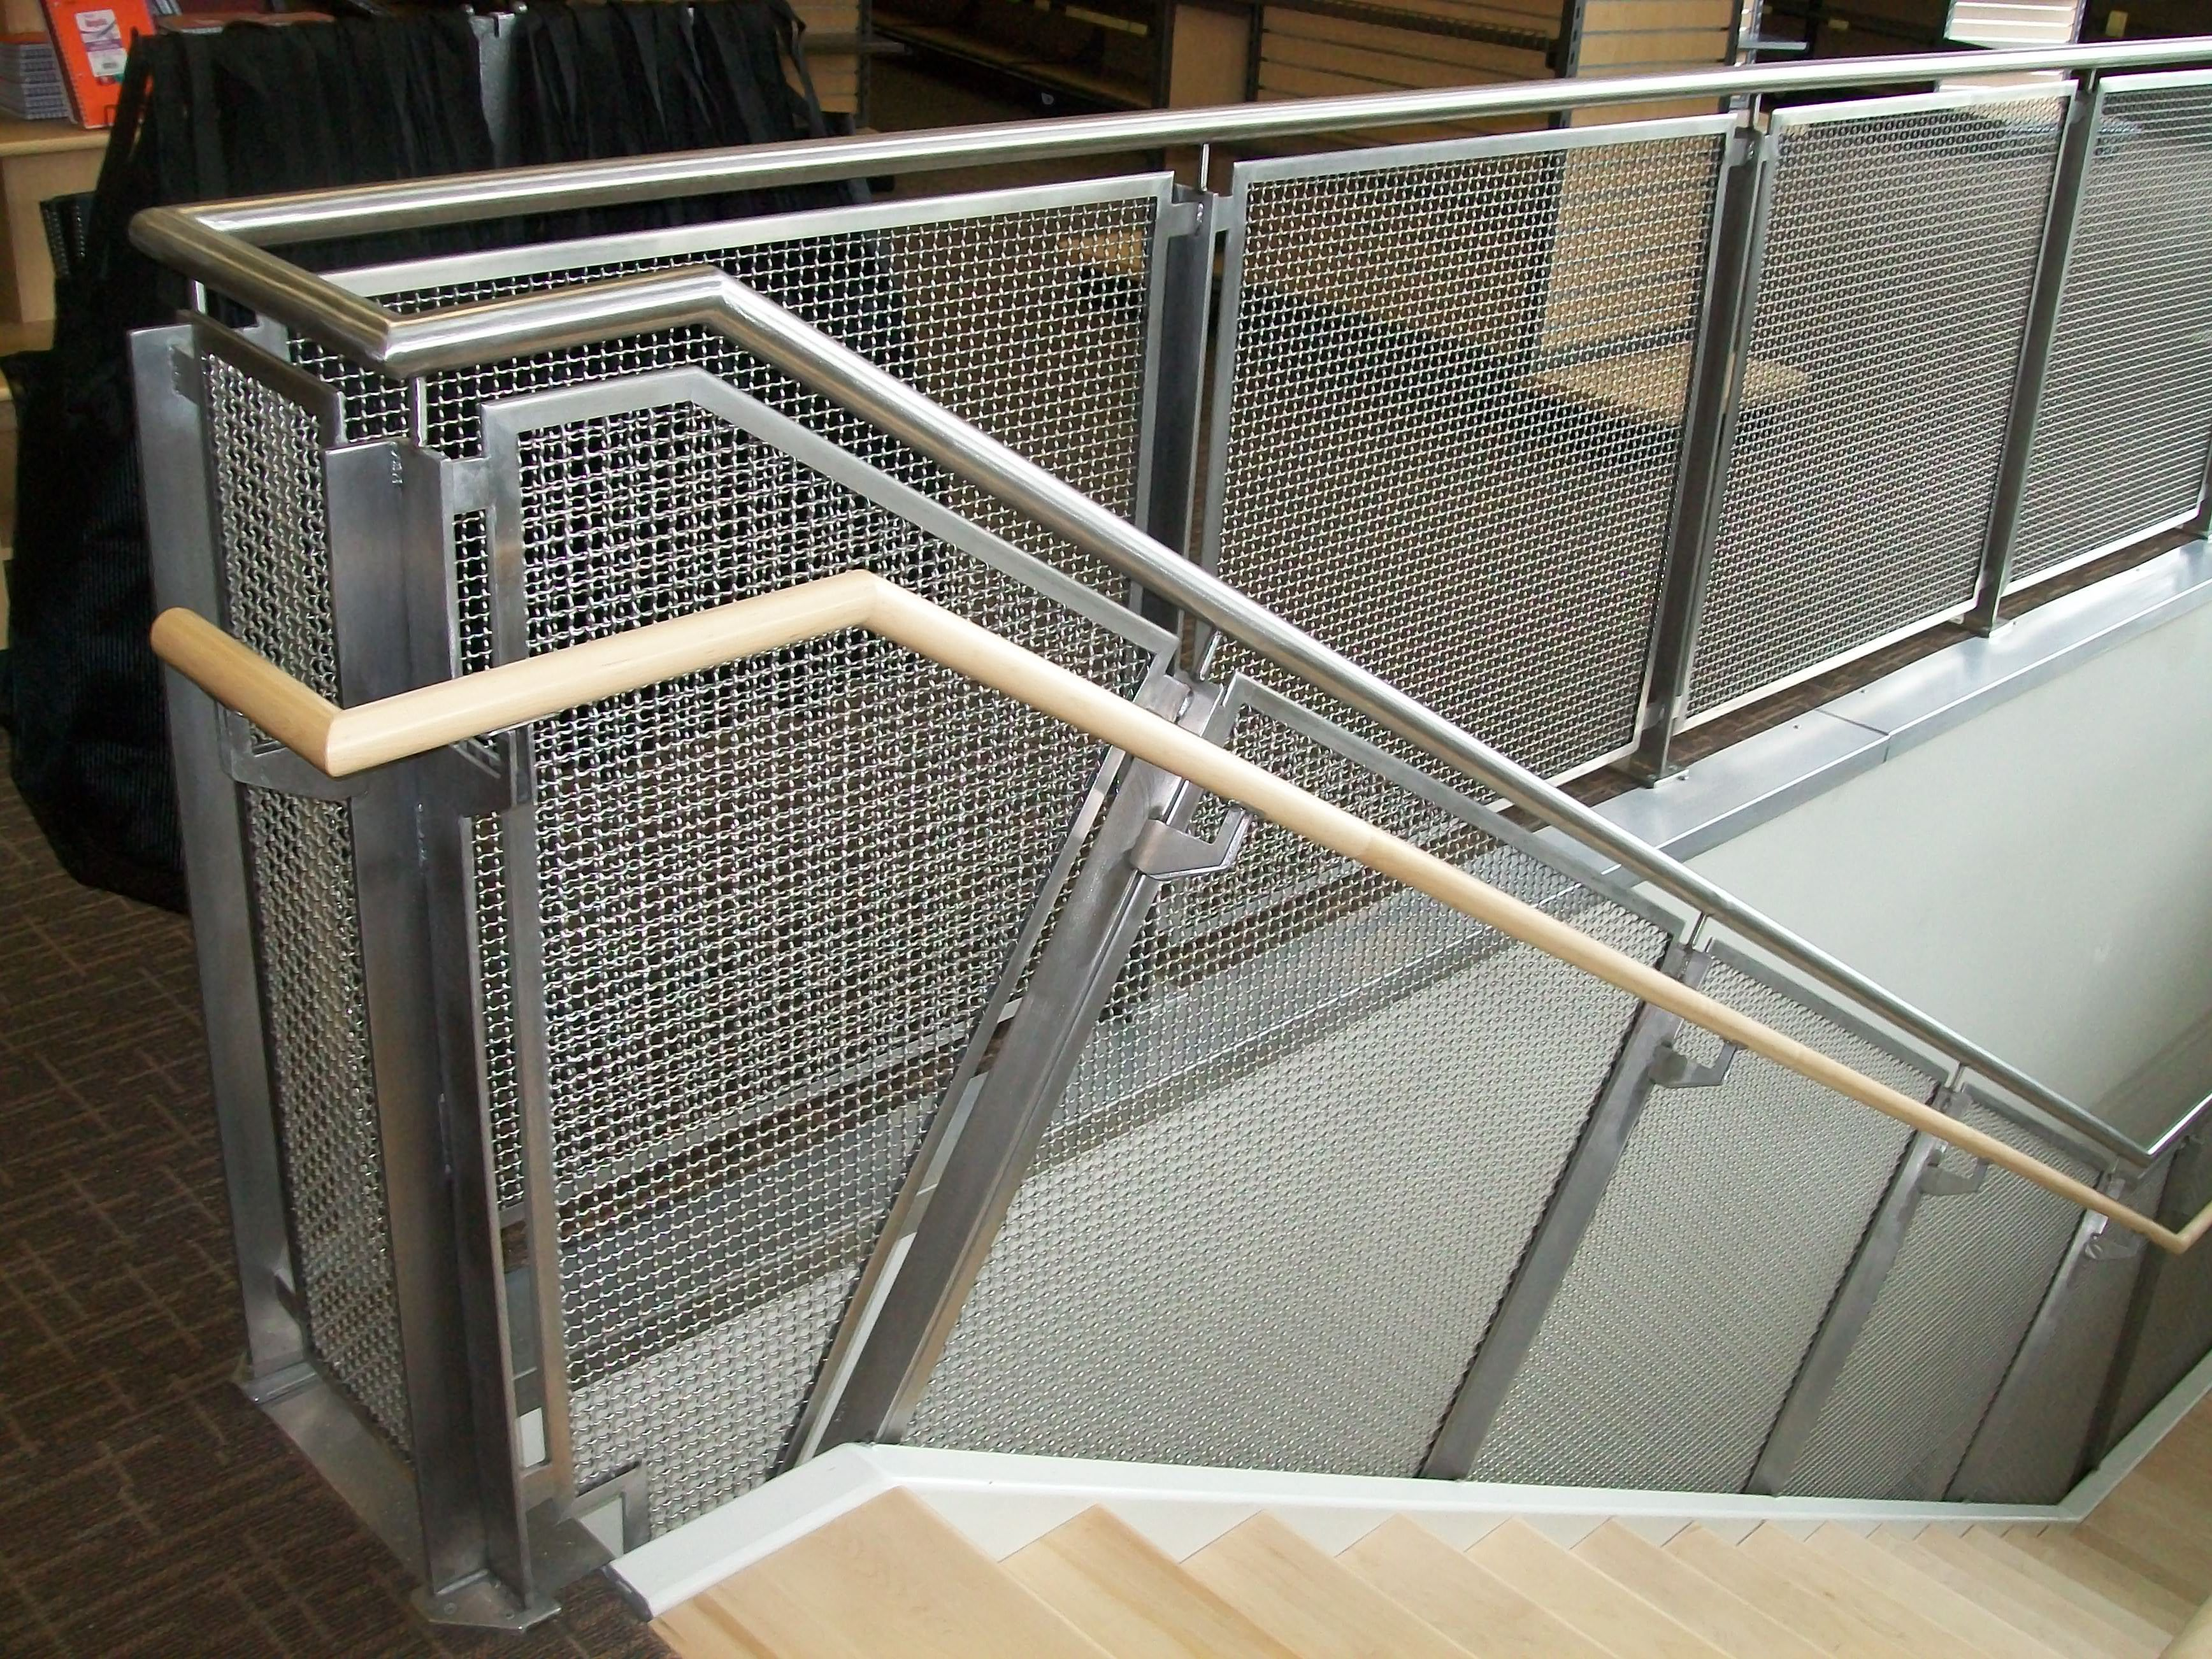 woven wire metal railings exterior | Stainless Steel Mesh Railing ...